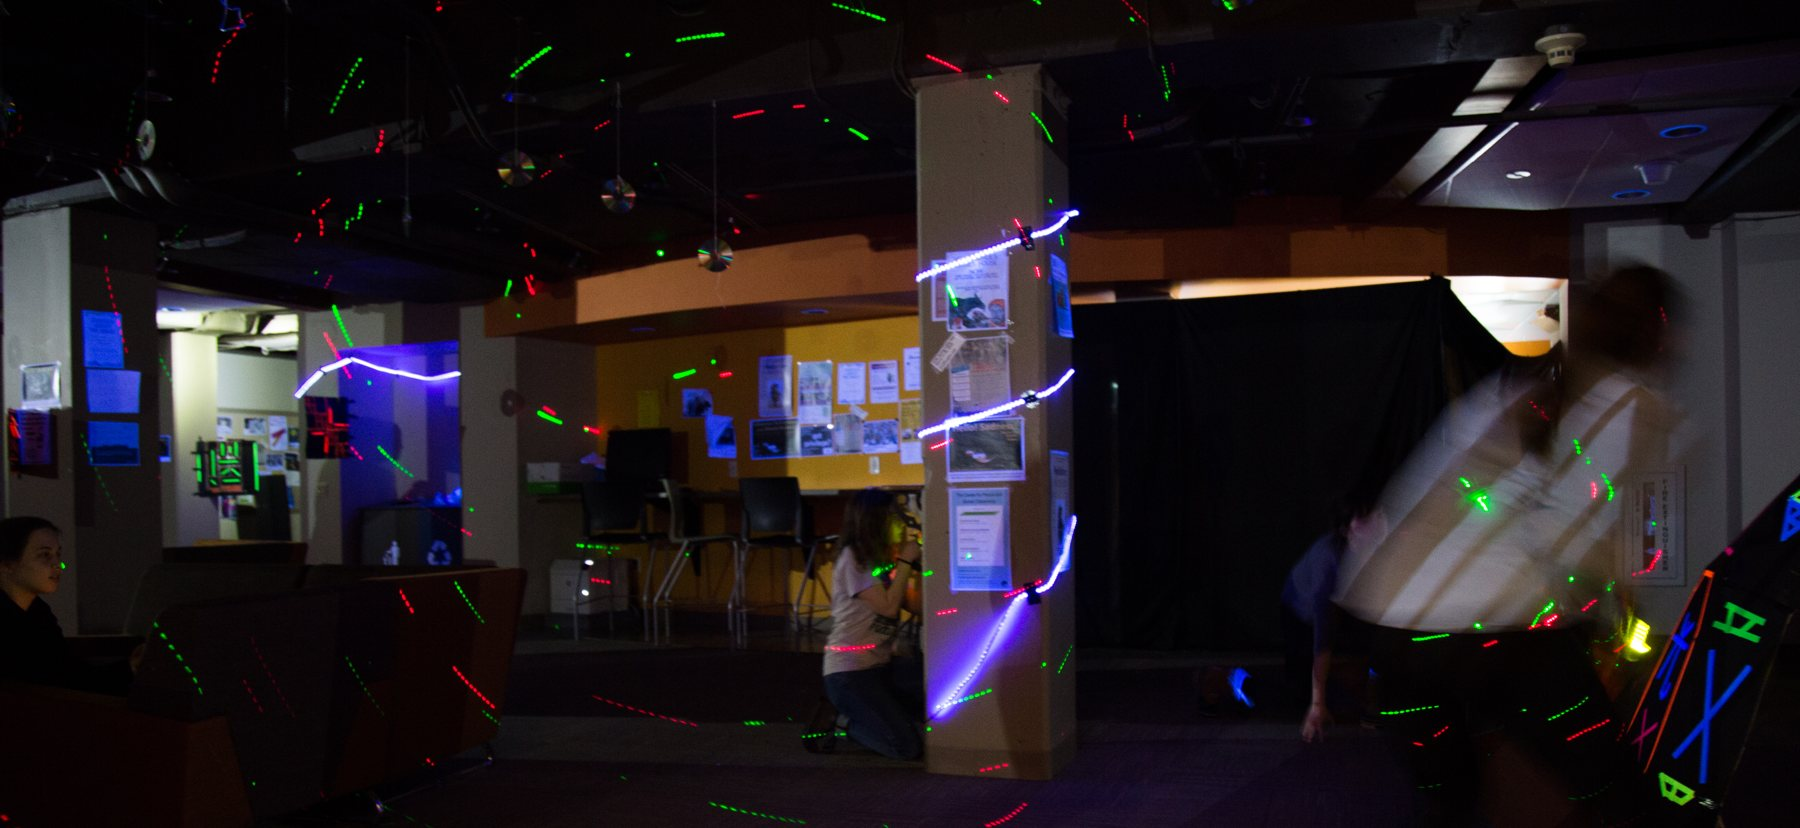 People playing laser tag in a basement